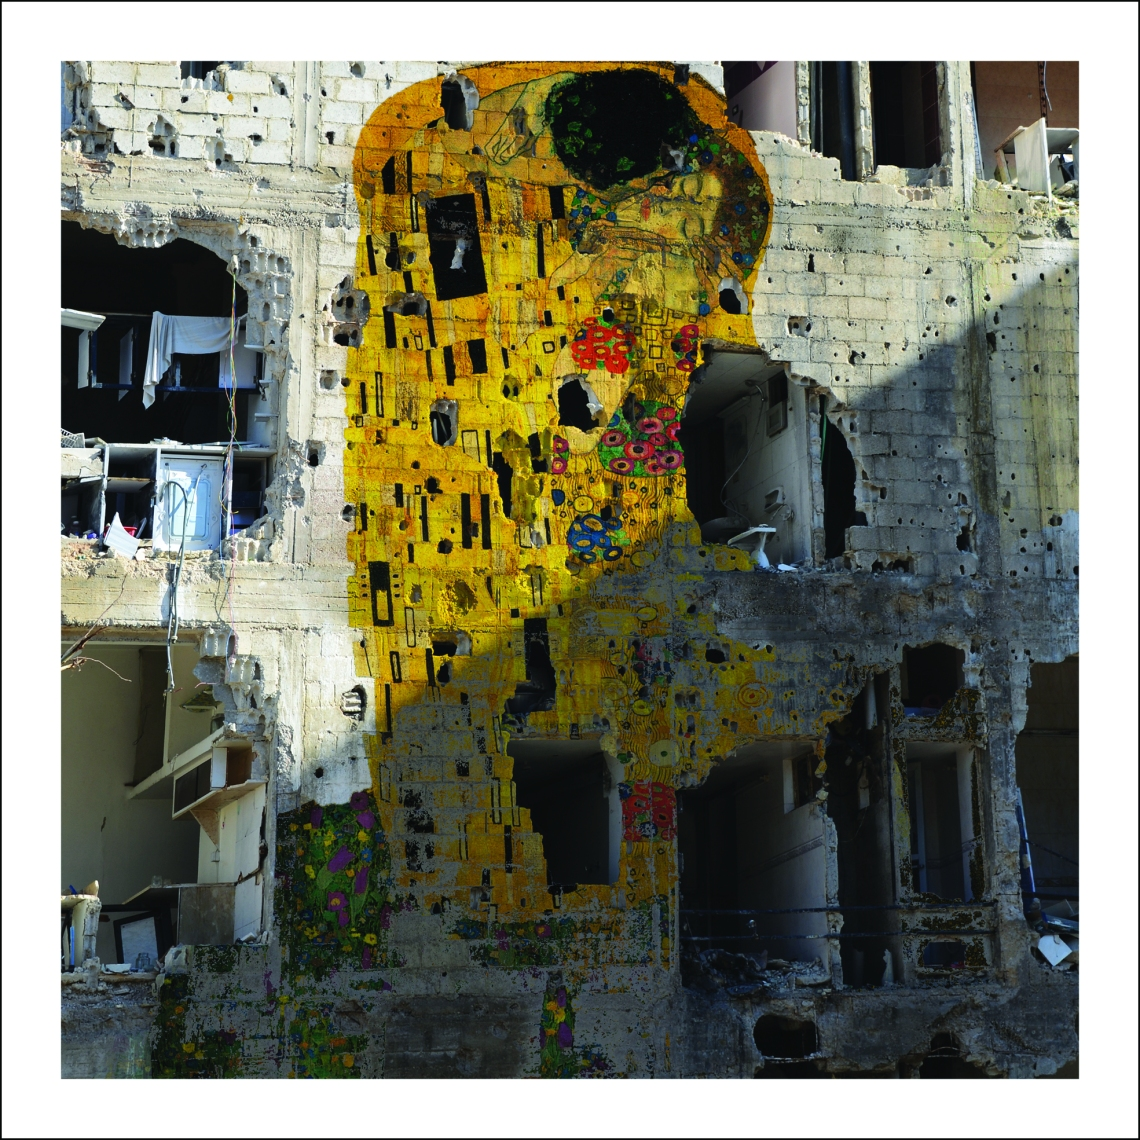 Tammam_Azzam_Syrian_Museum___Gustav_Klimts_The_Kiss_Freedom_Graffiti_